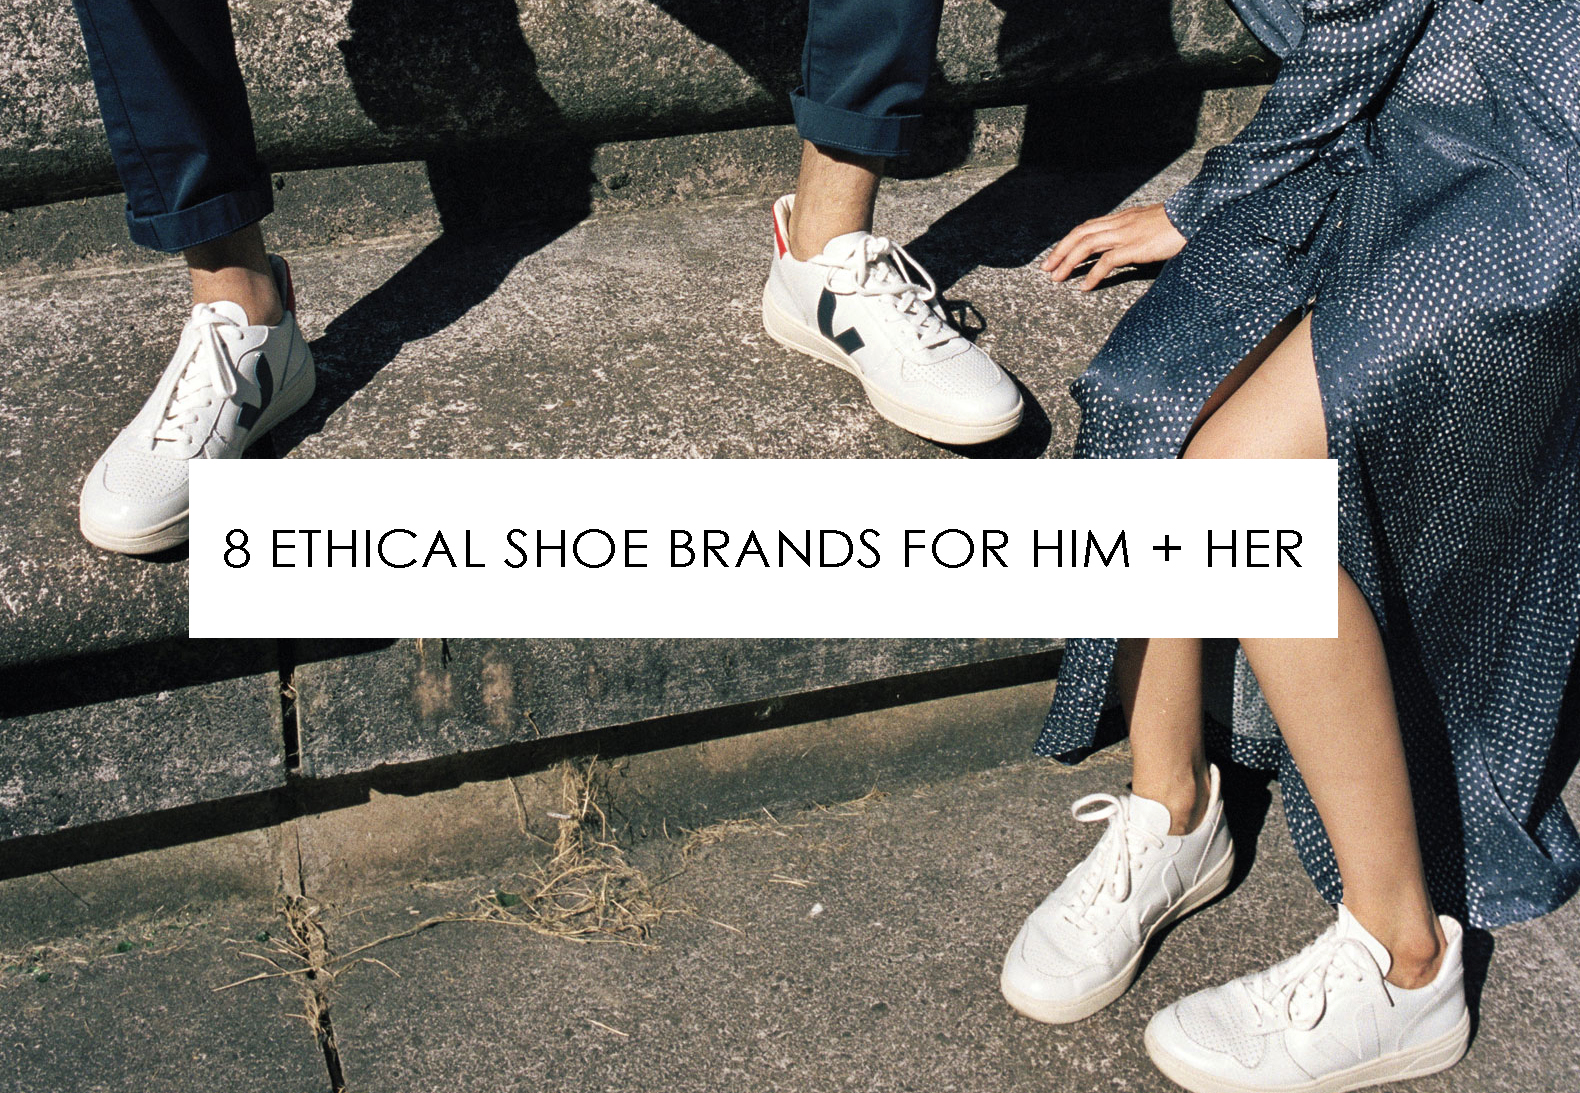 7 Ethical Shoe Brands by Sutton + Grove